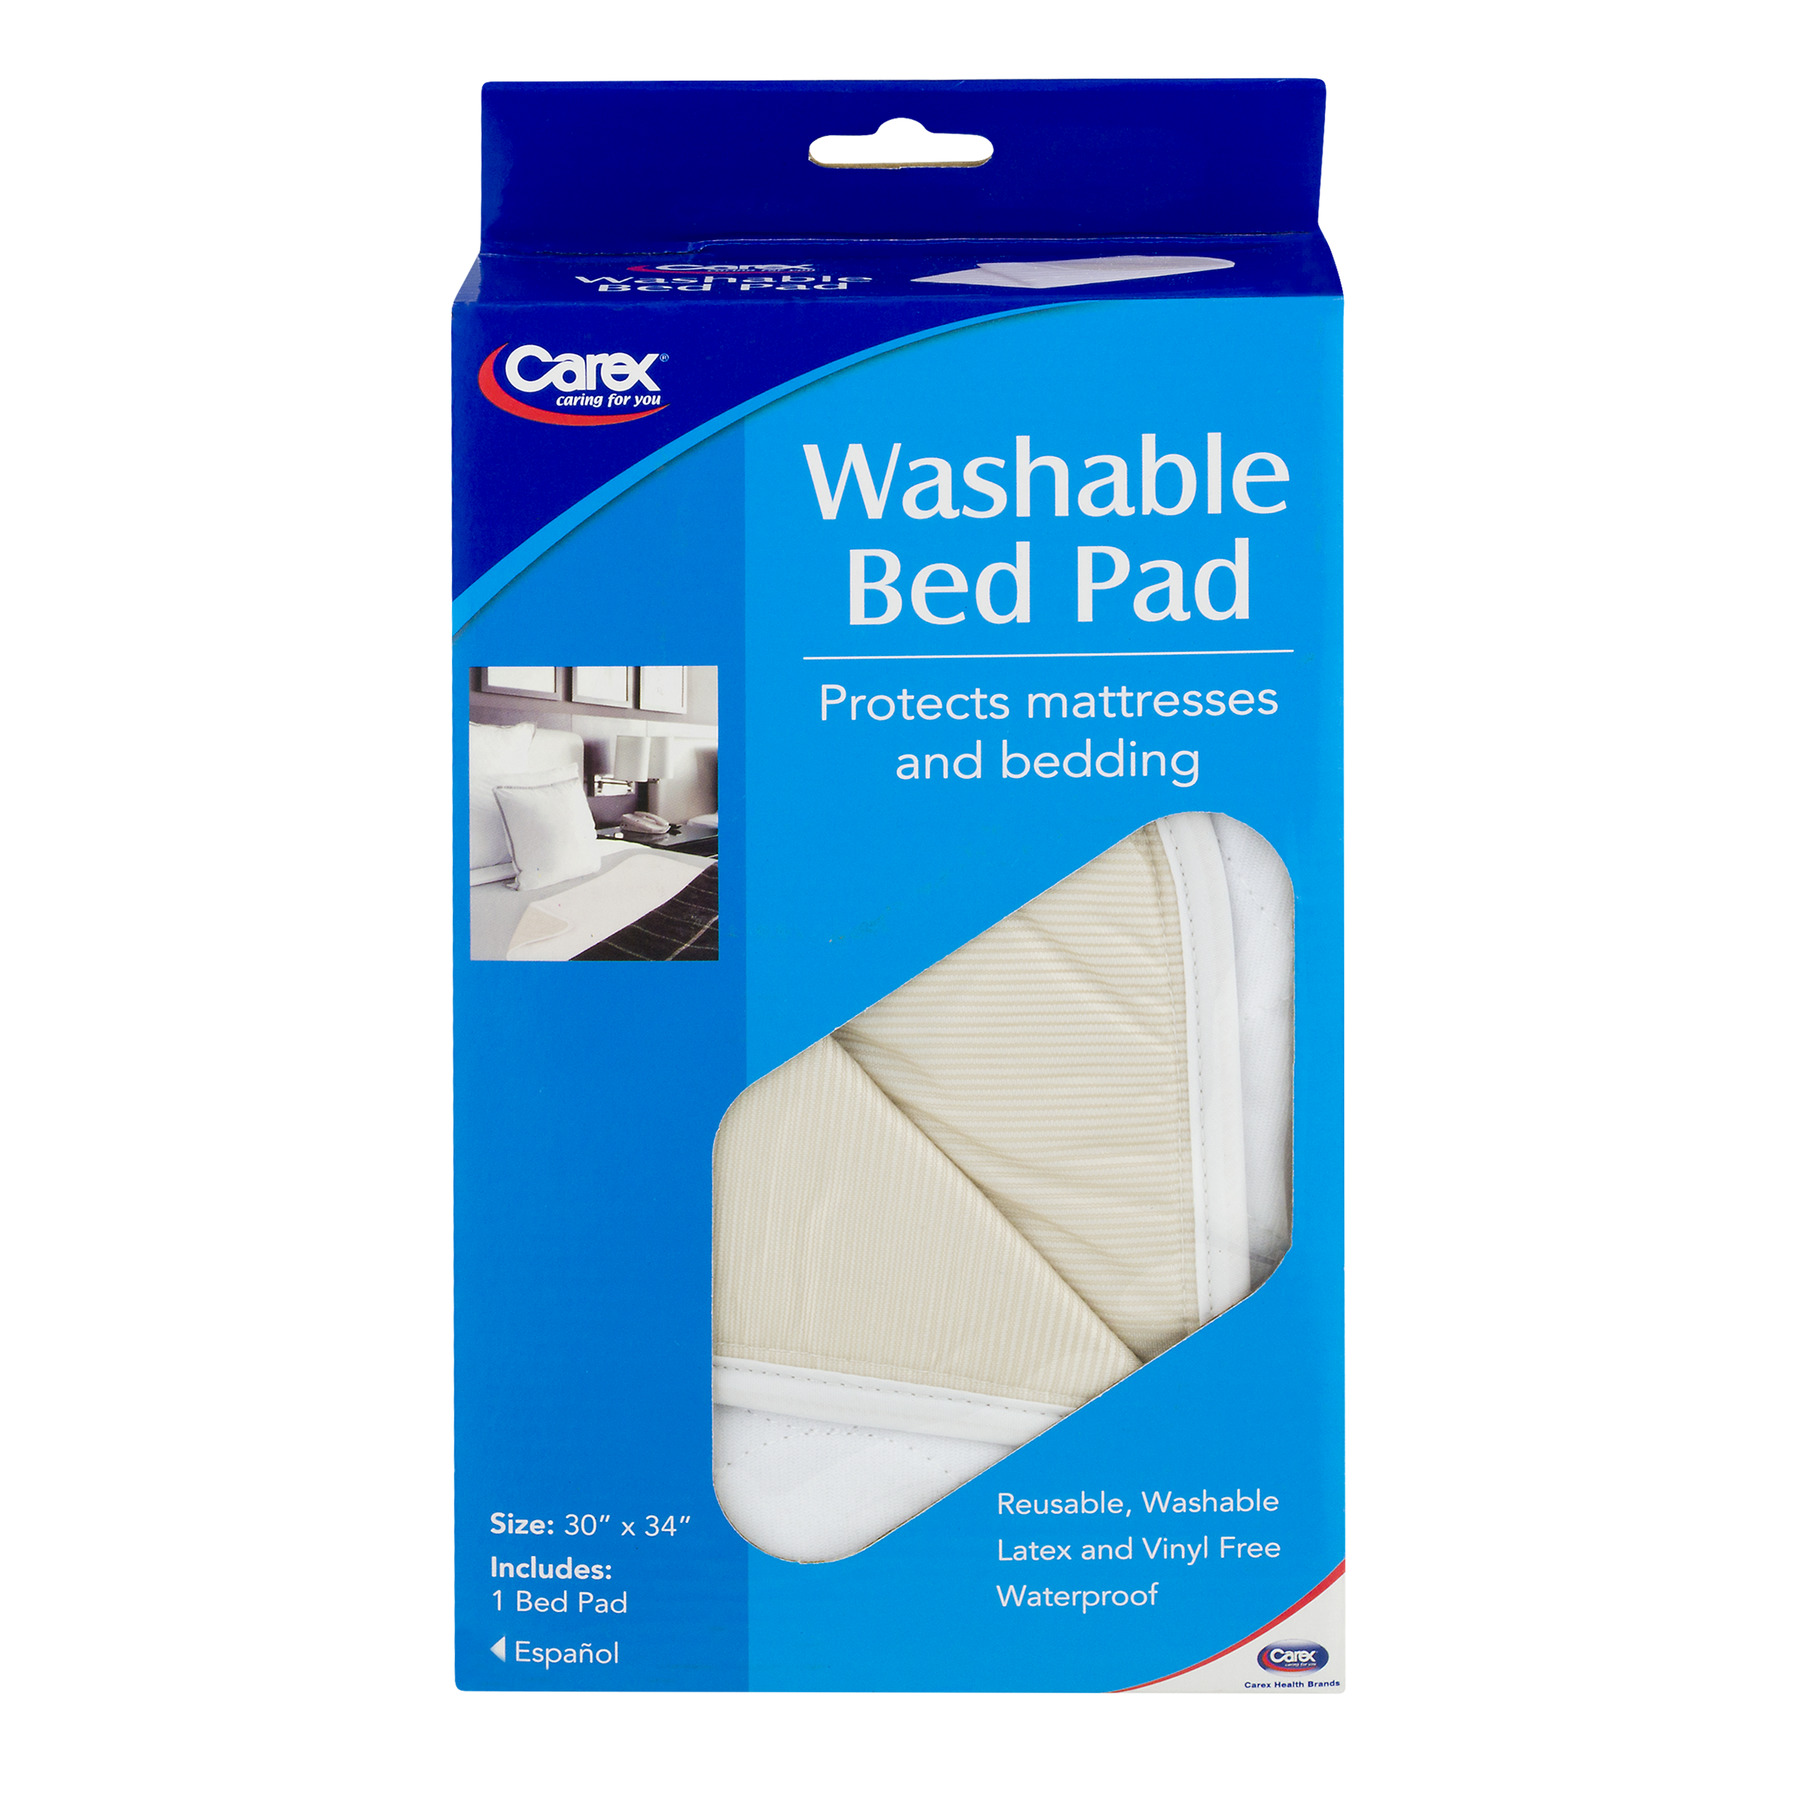 Carex Washable Bed Pad - 1 CT1.0 CT